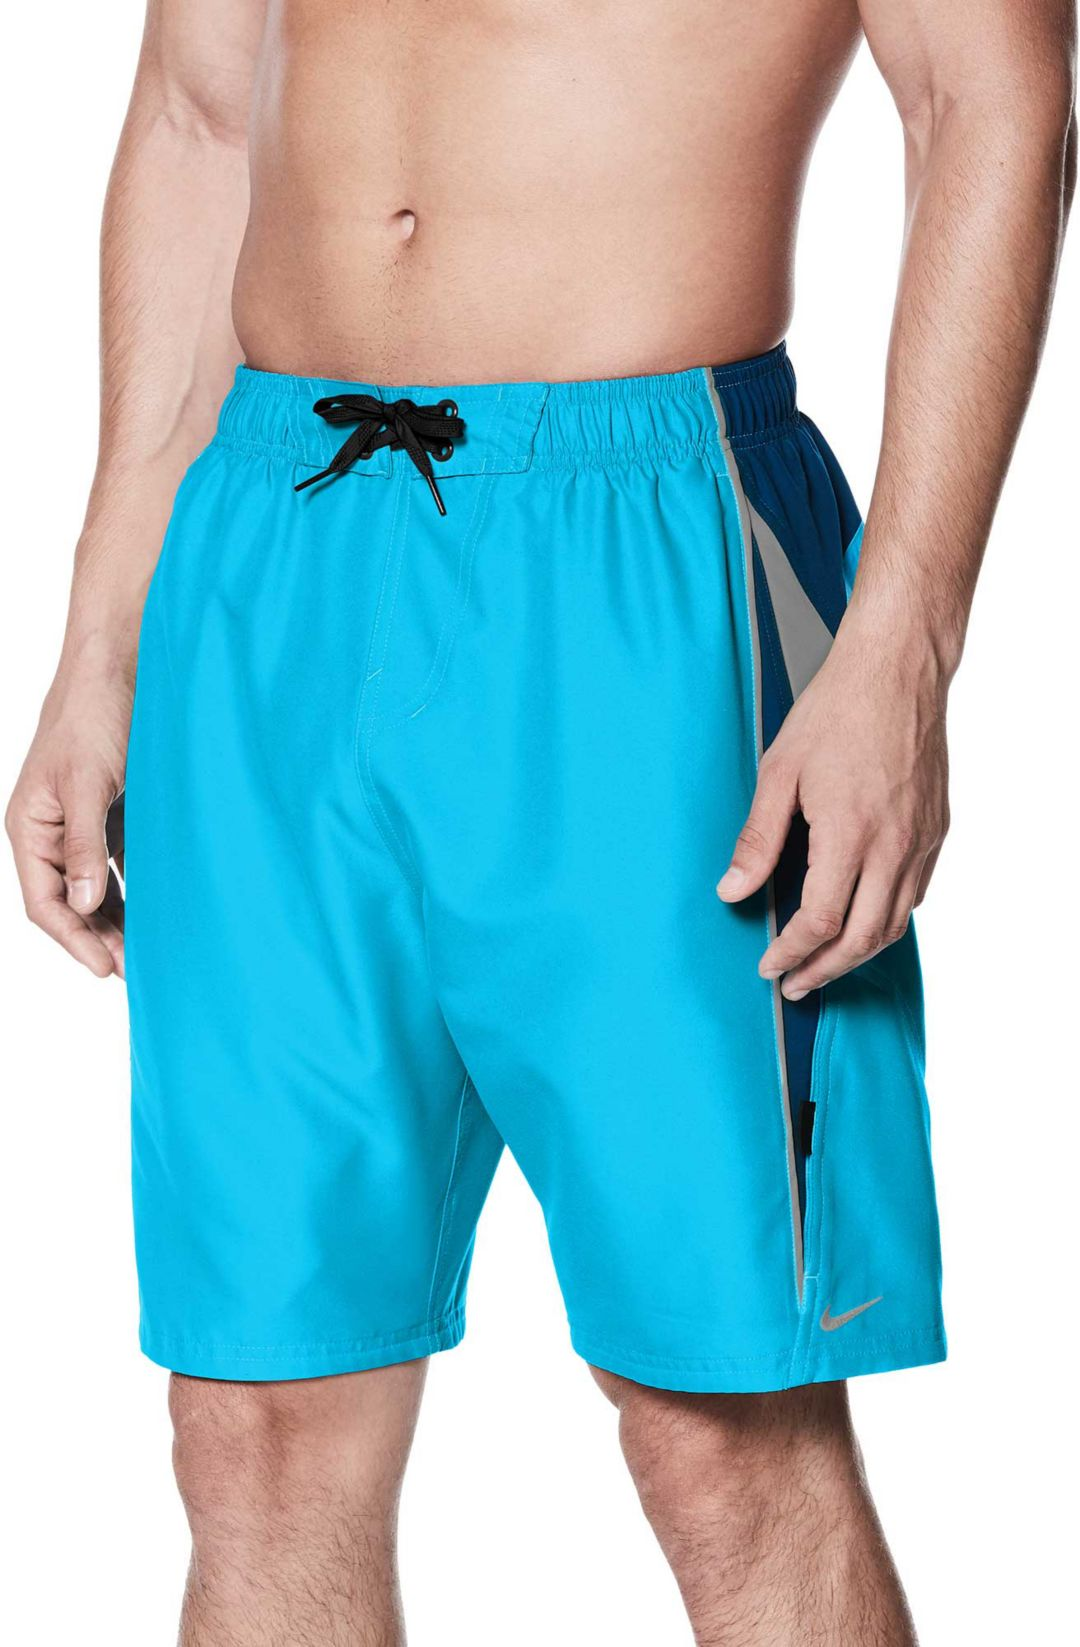 317c1a170f Nike Men's Core Contend Board Shorts. noImageFound. Previous